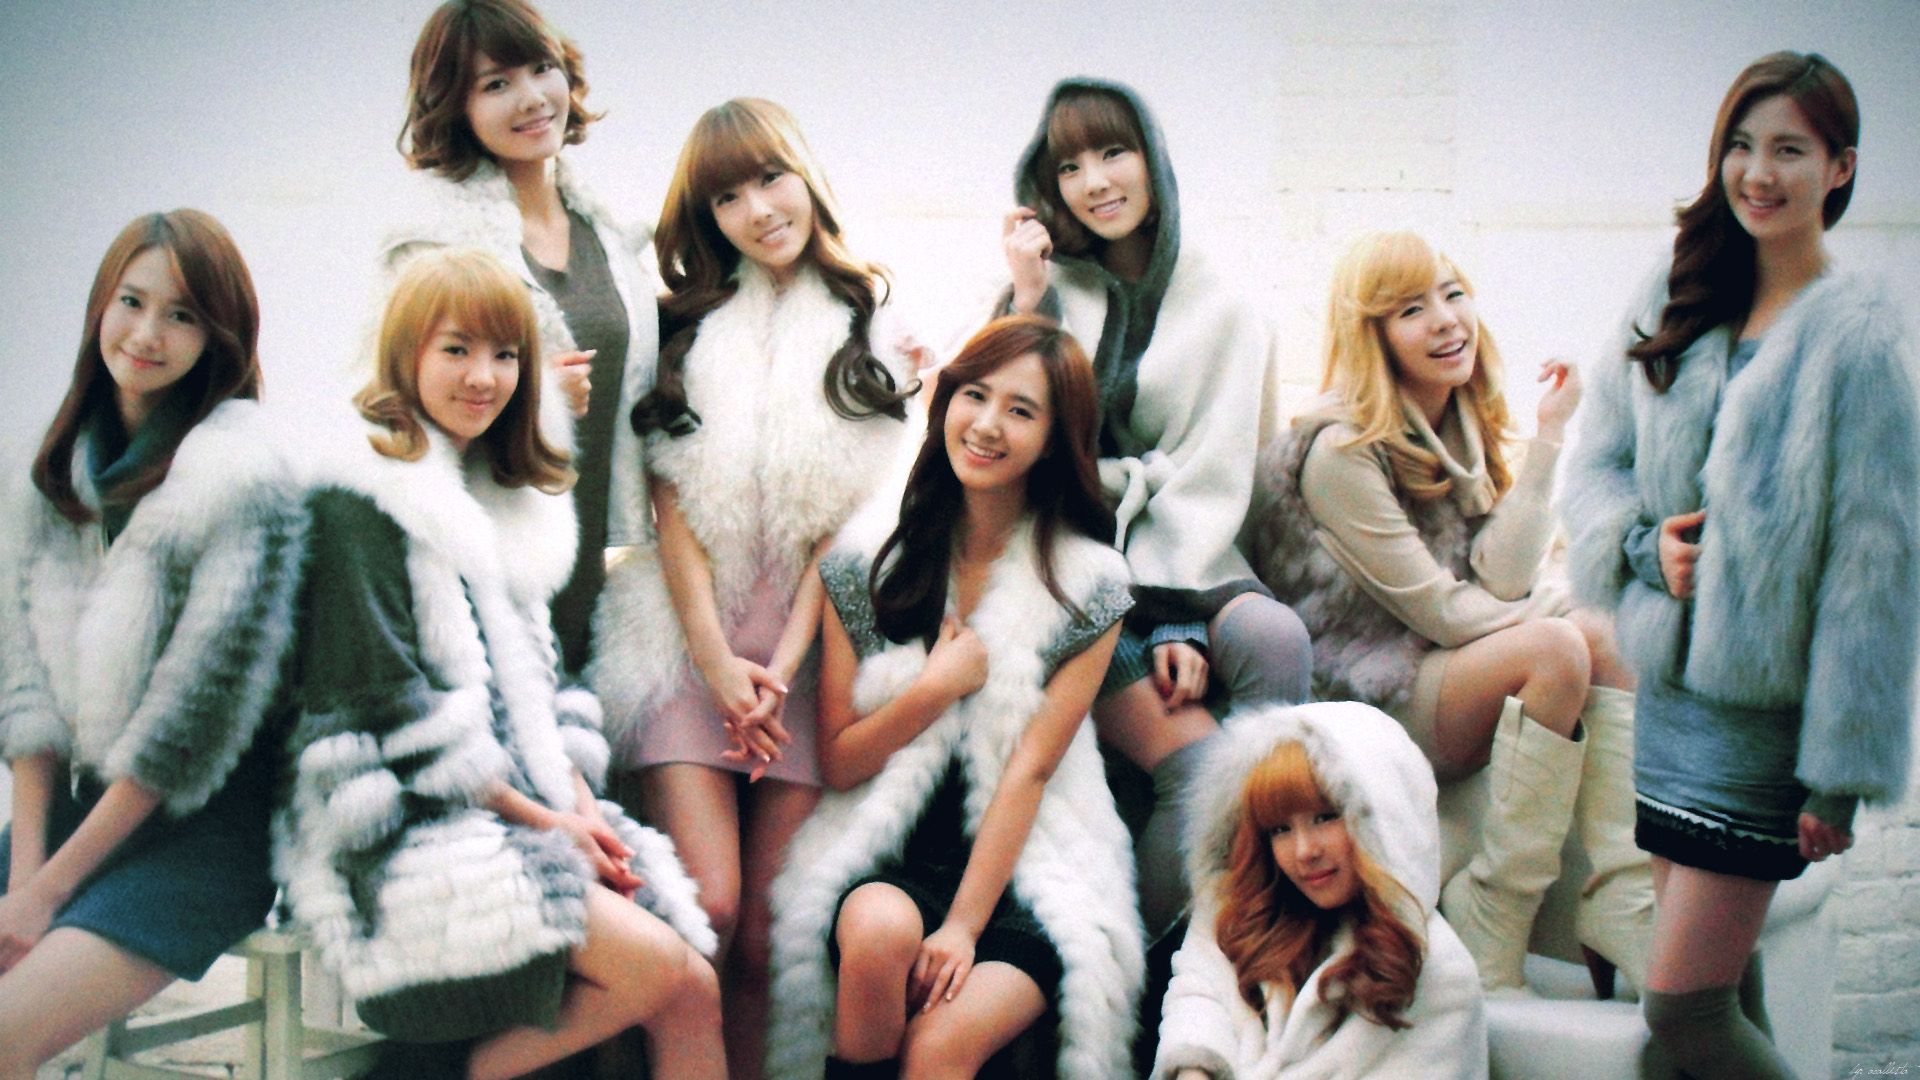 snsd desktop wallpaper hd 41101 1920x1080 px 552 45 kb celebrities